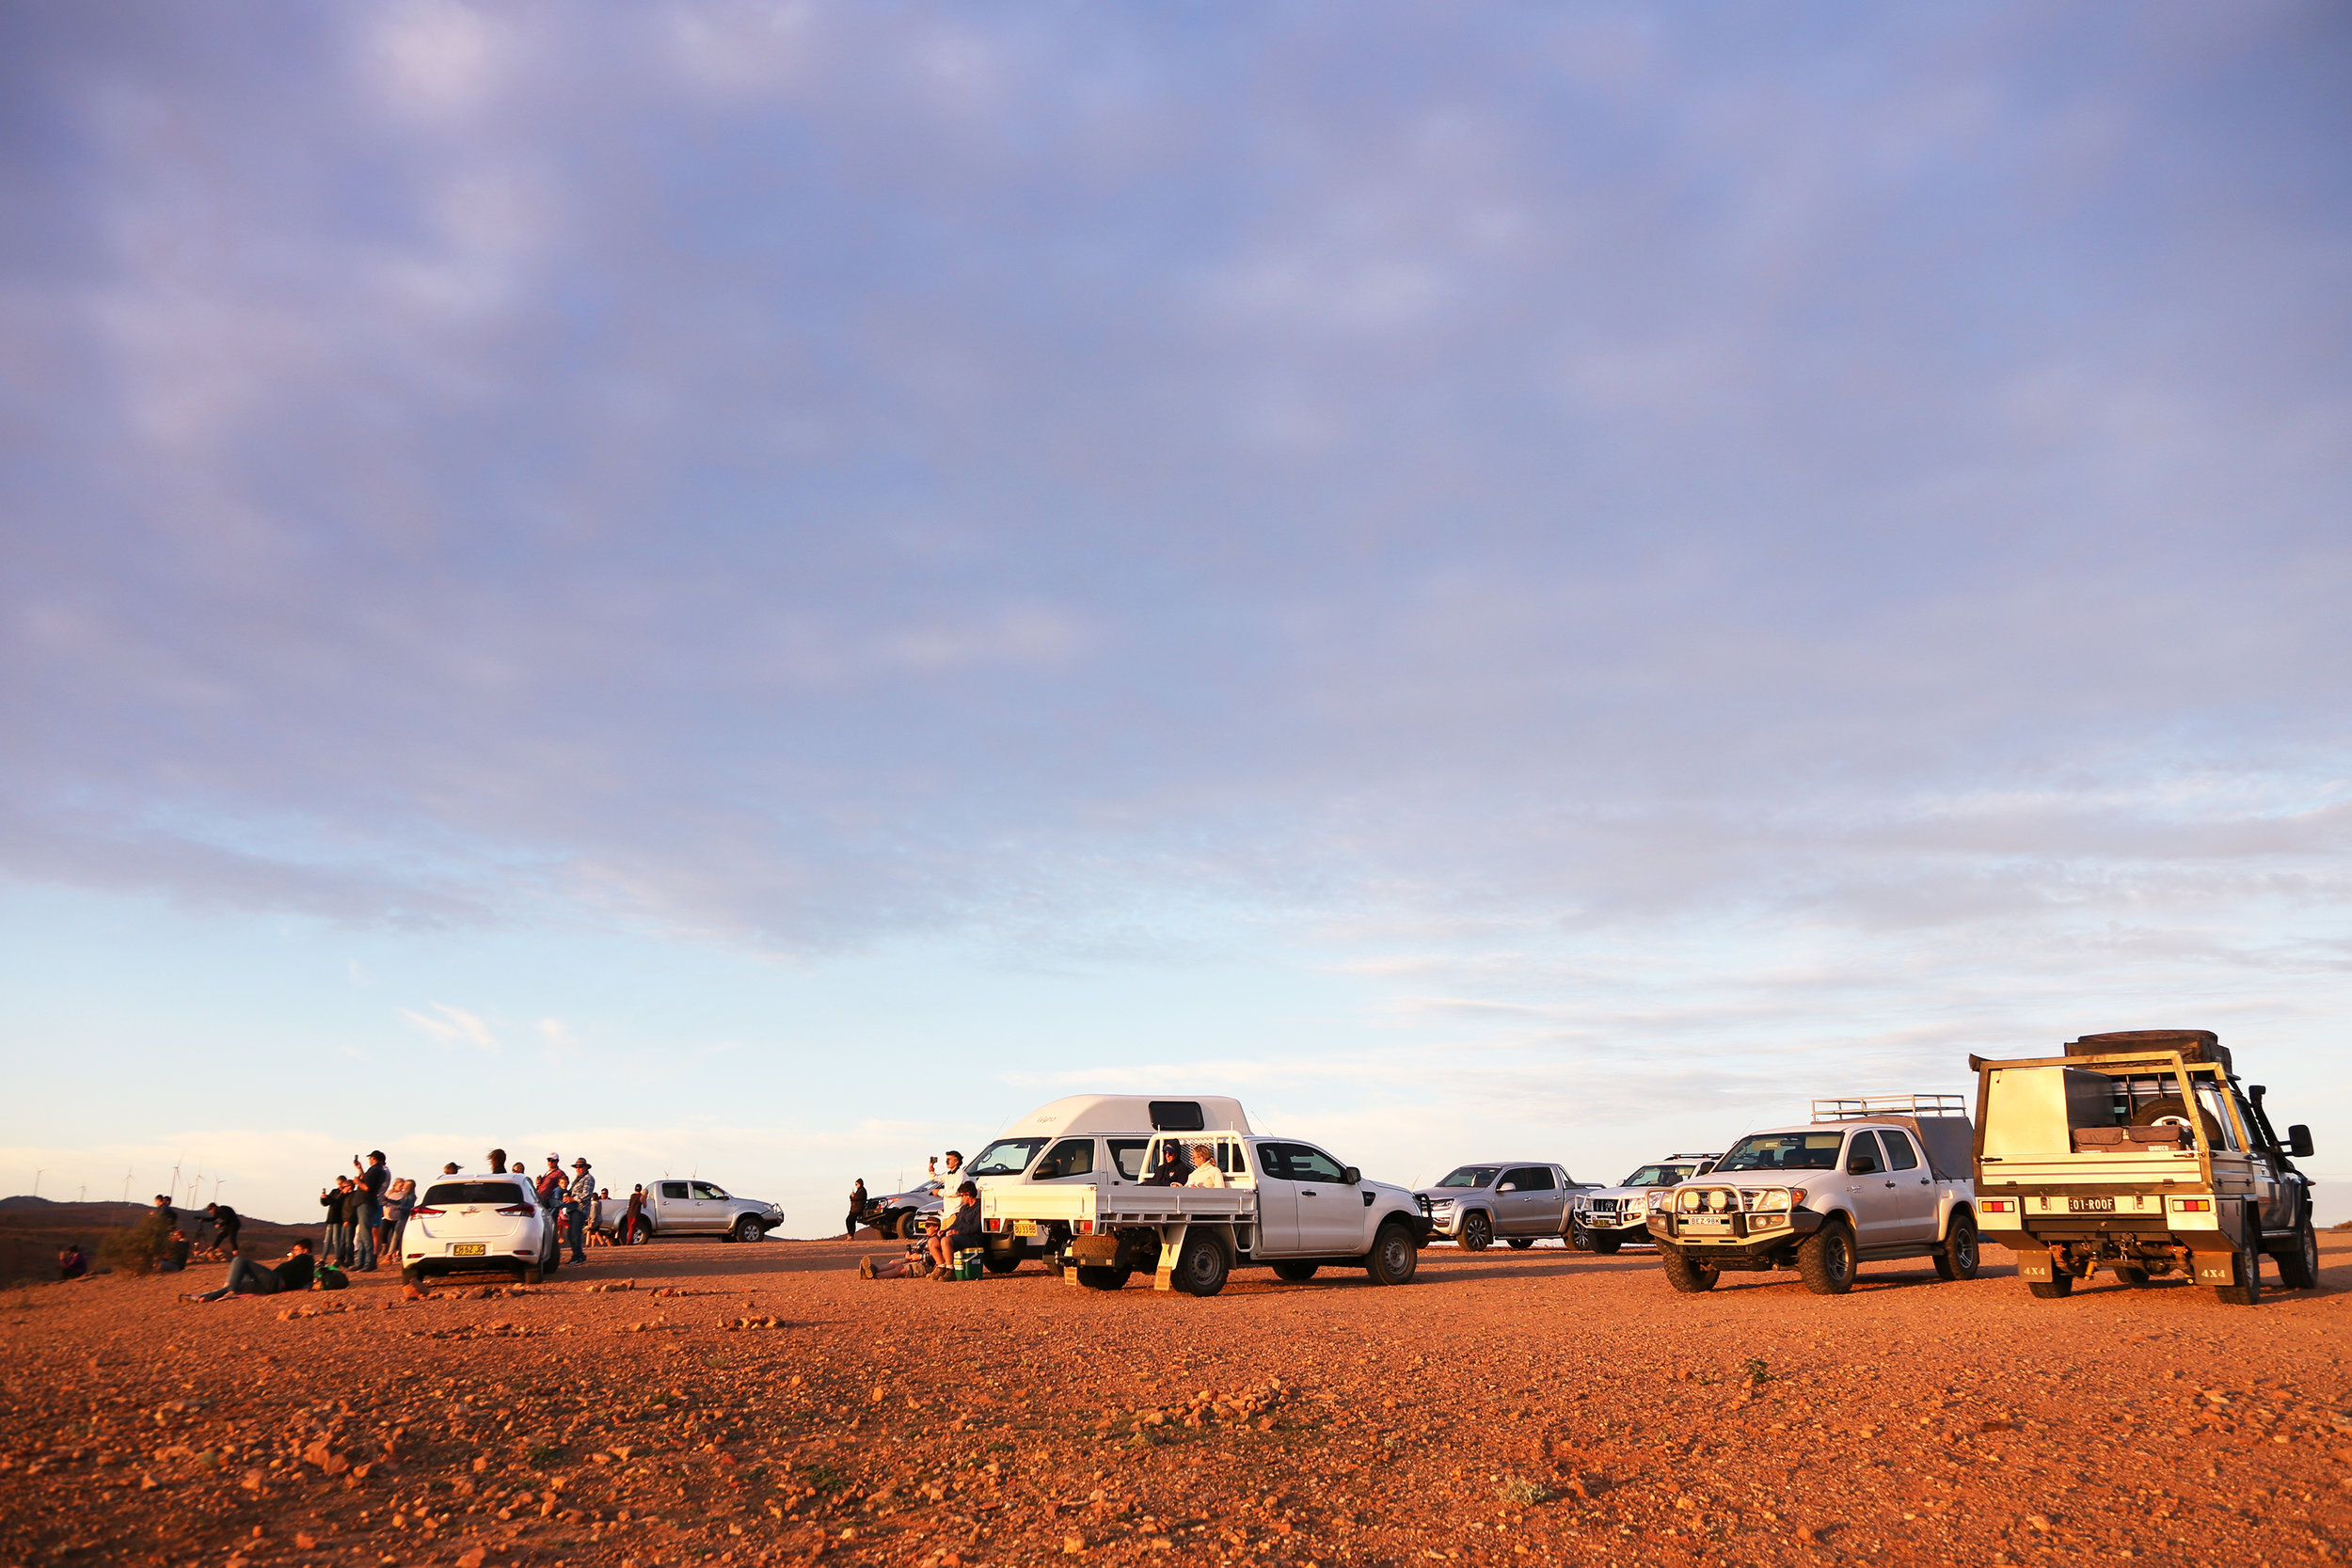 Over a dozen cars full of people (both locals and tourists) gather at the Mundi Mundi lookout to watch the sunset.